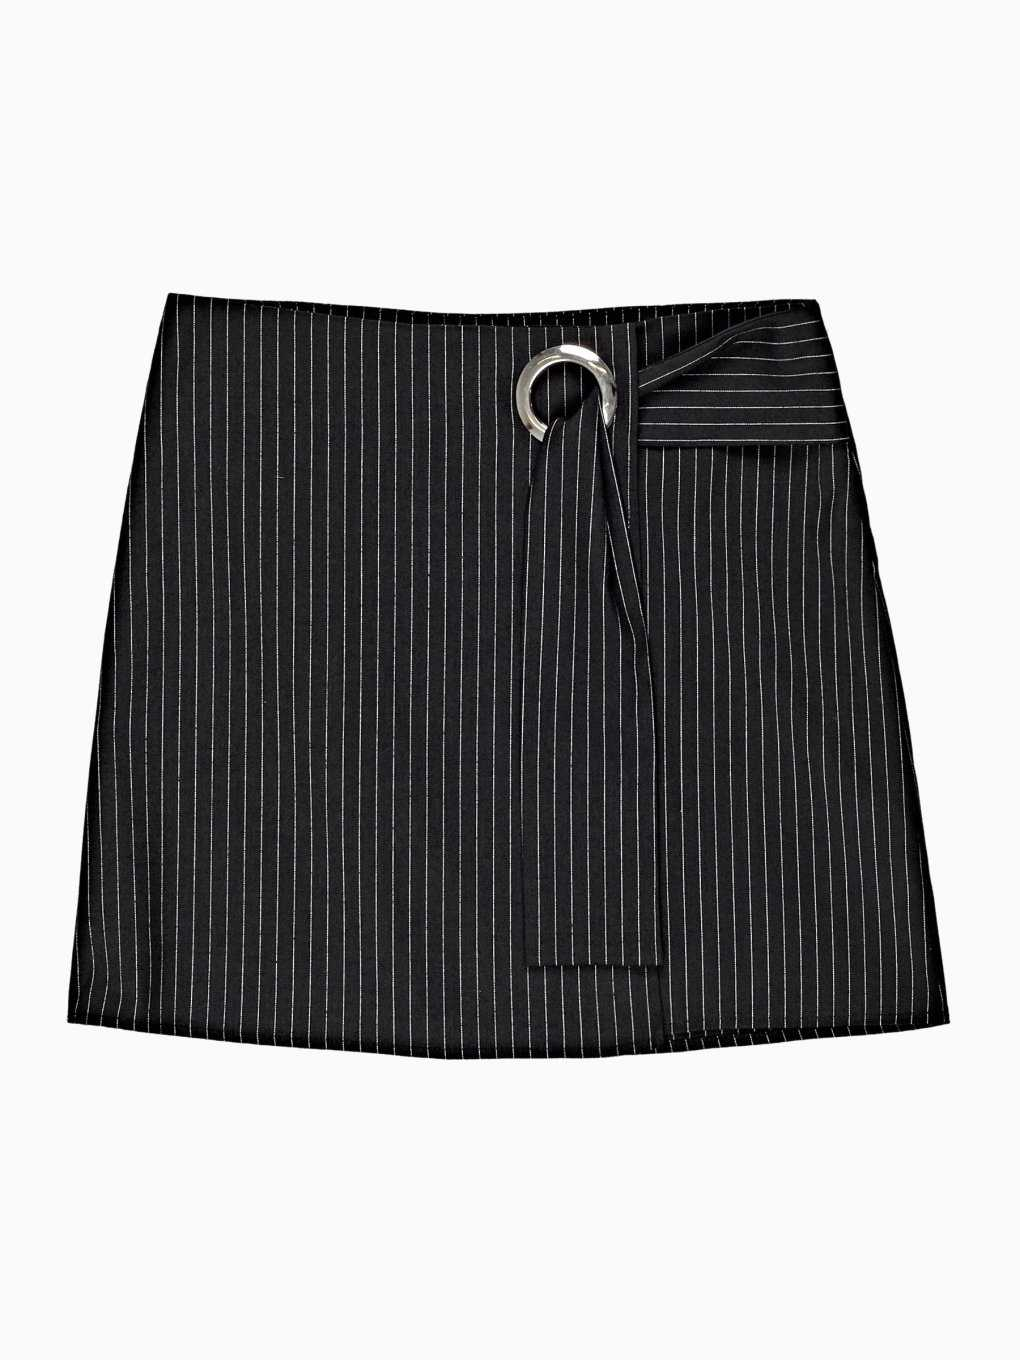 STRIPED MINI SKIRT WITH METAL EYELET